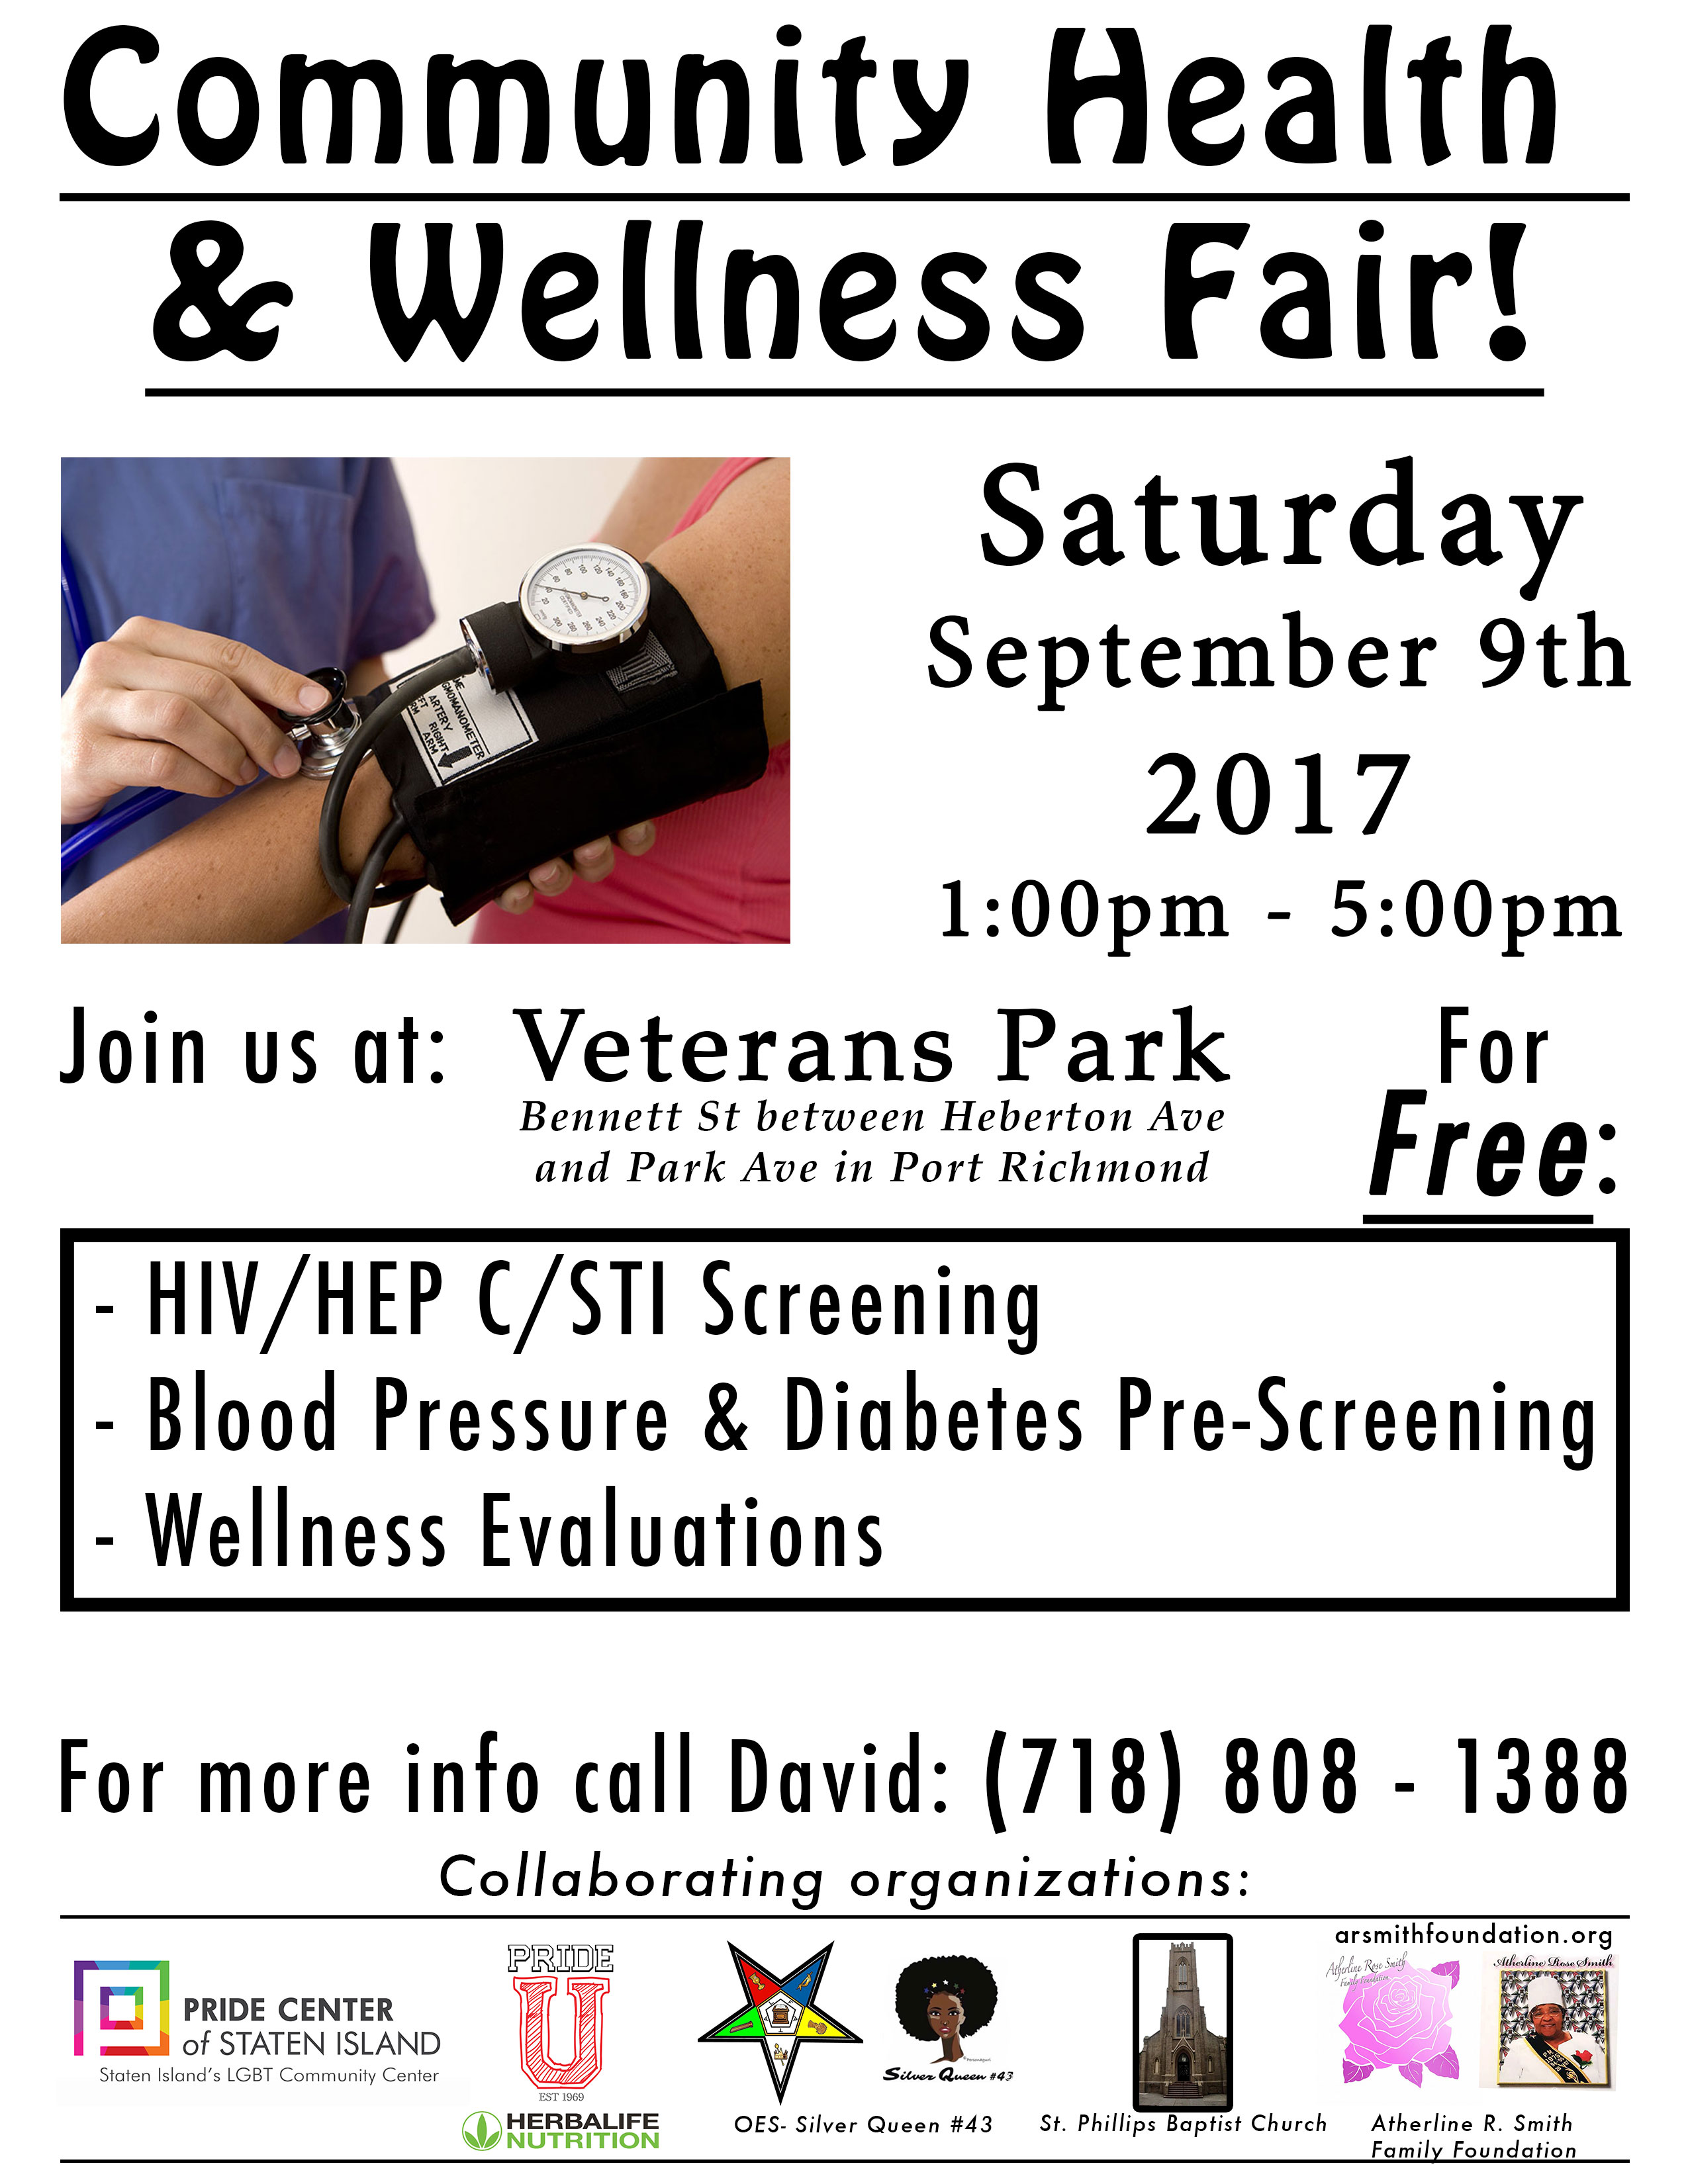 CommunityHealthFair_PtRichmond